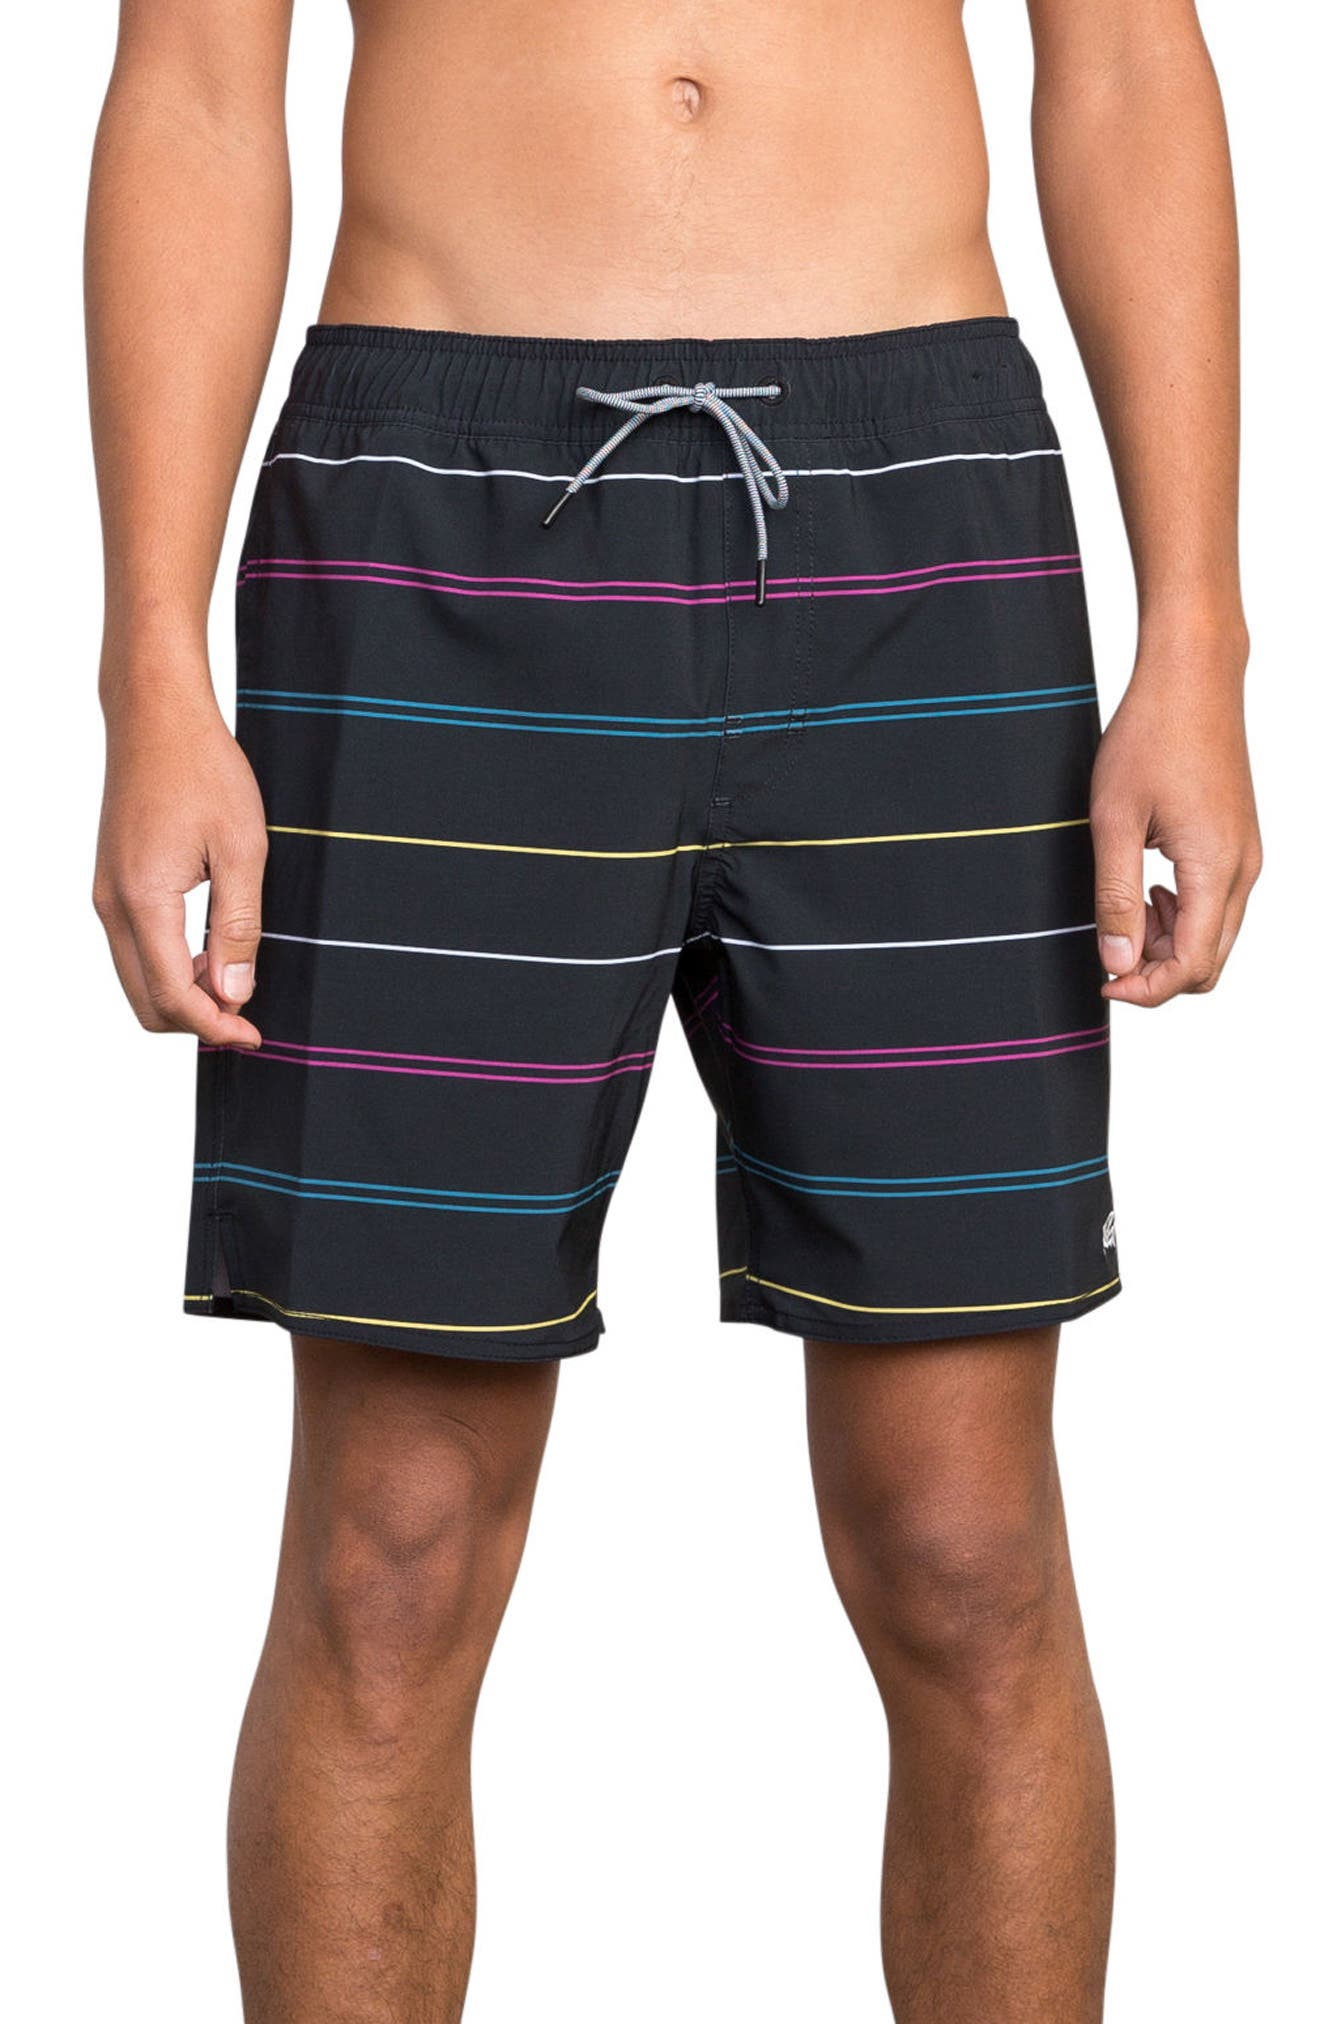 Middle Elastic Swim Trunks,                             Main thumbnail 1, color,                             008